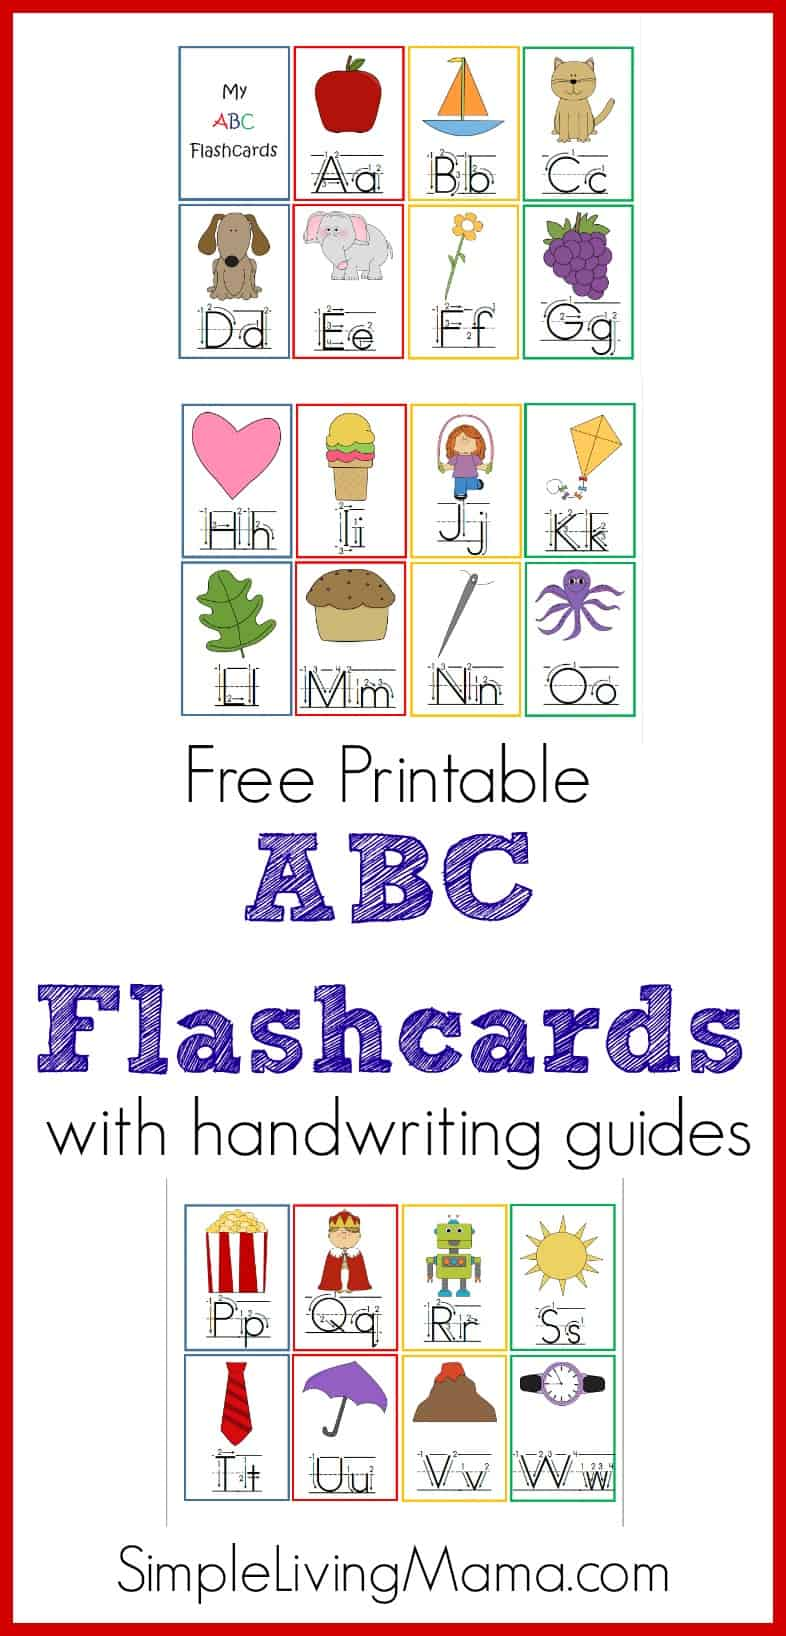 photograph regarding Printable Abc Flash Cards titled Printable ABC Flashcards - Homeschool Printables for Cost-free